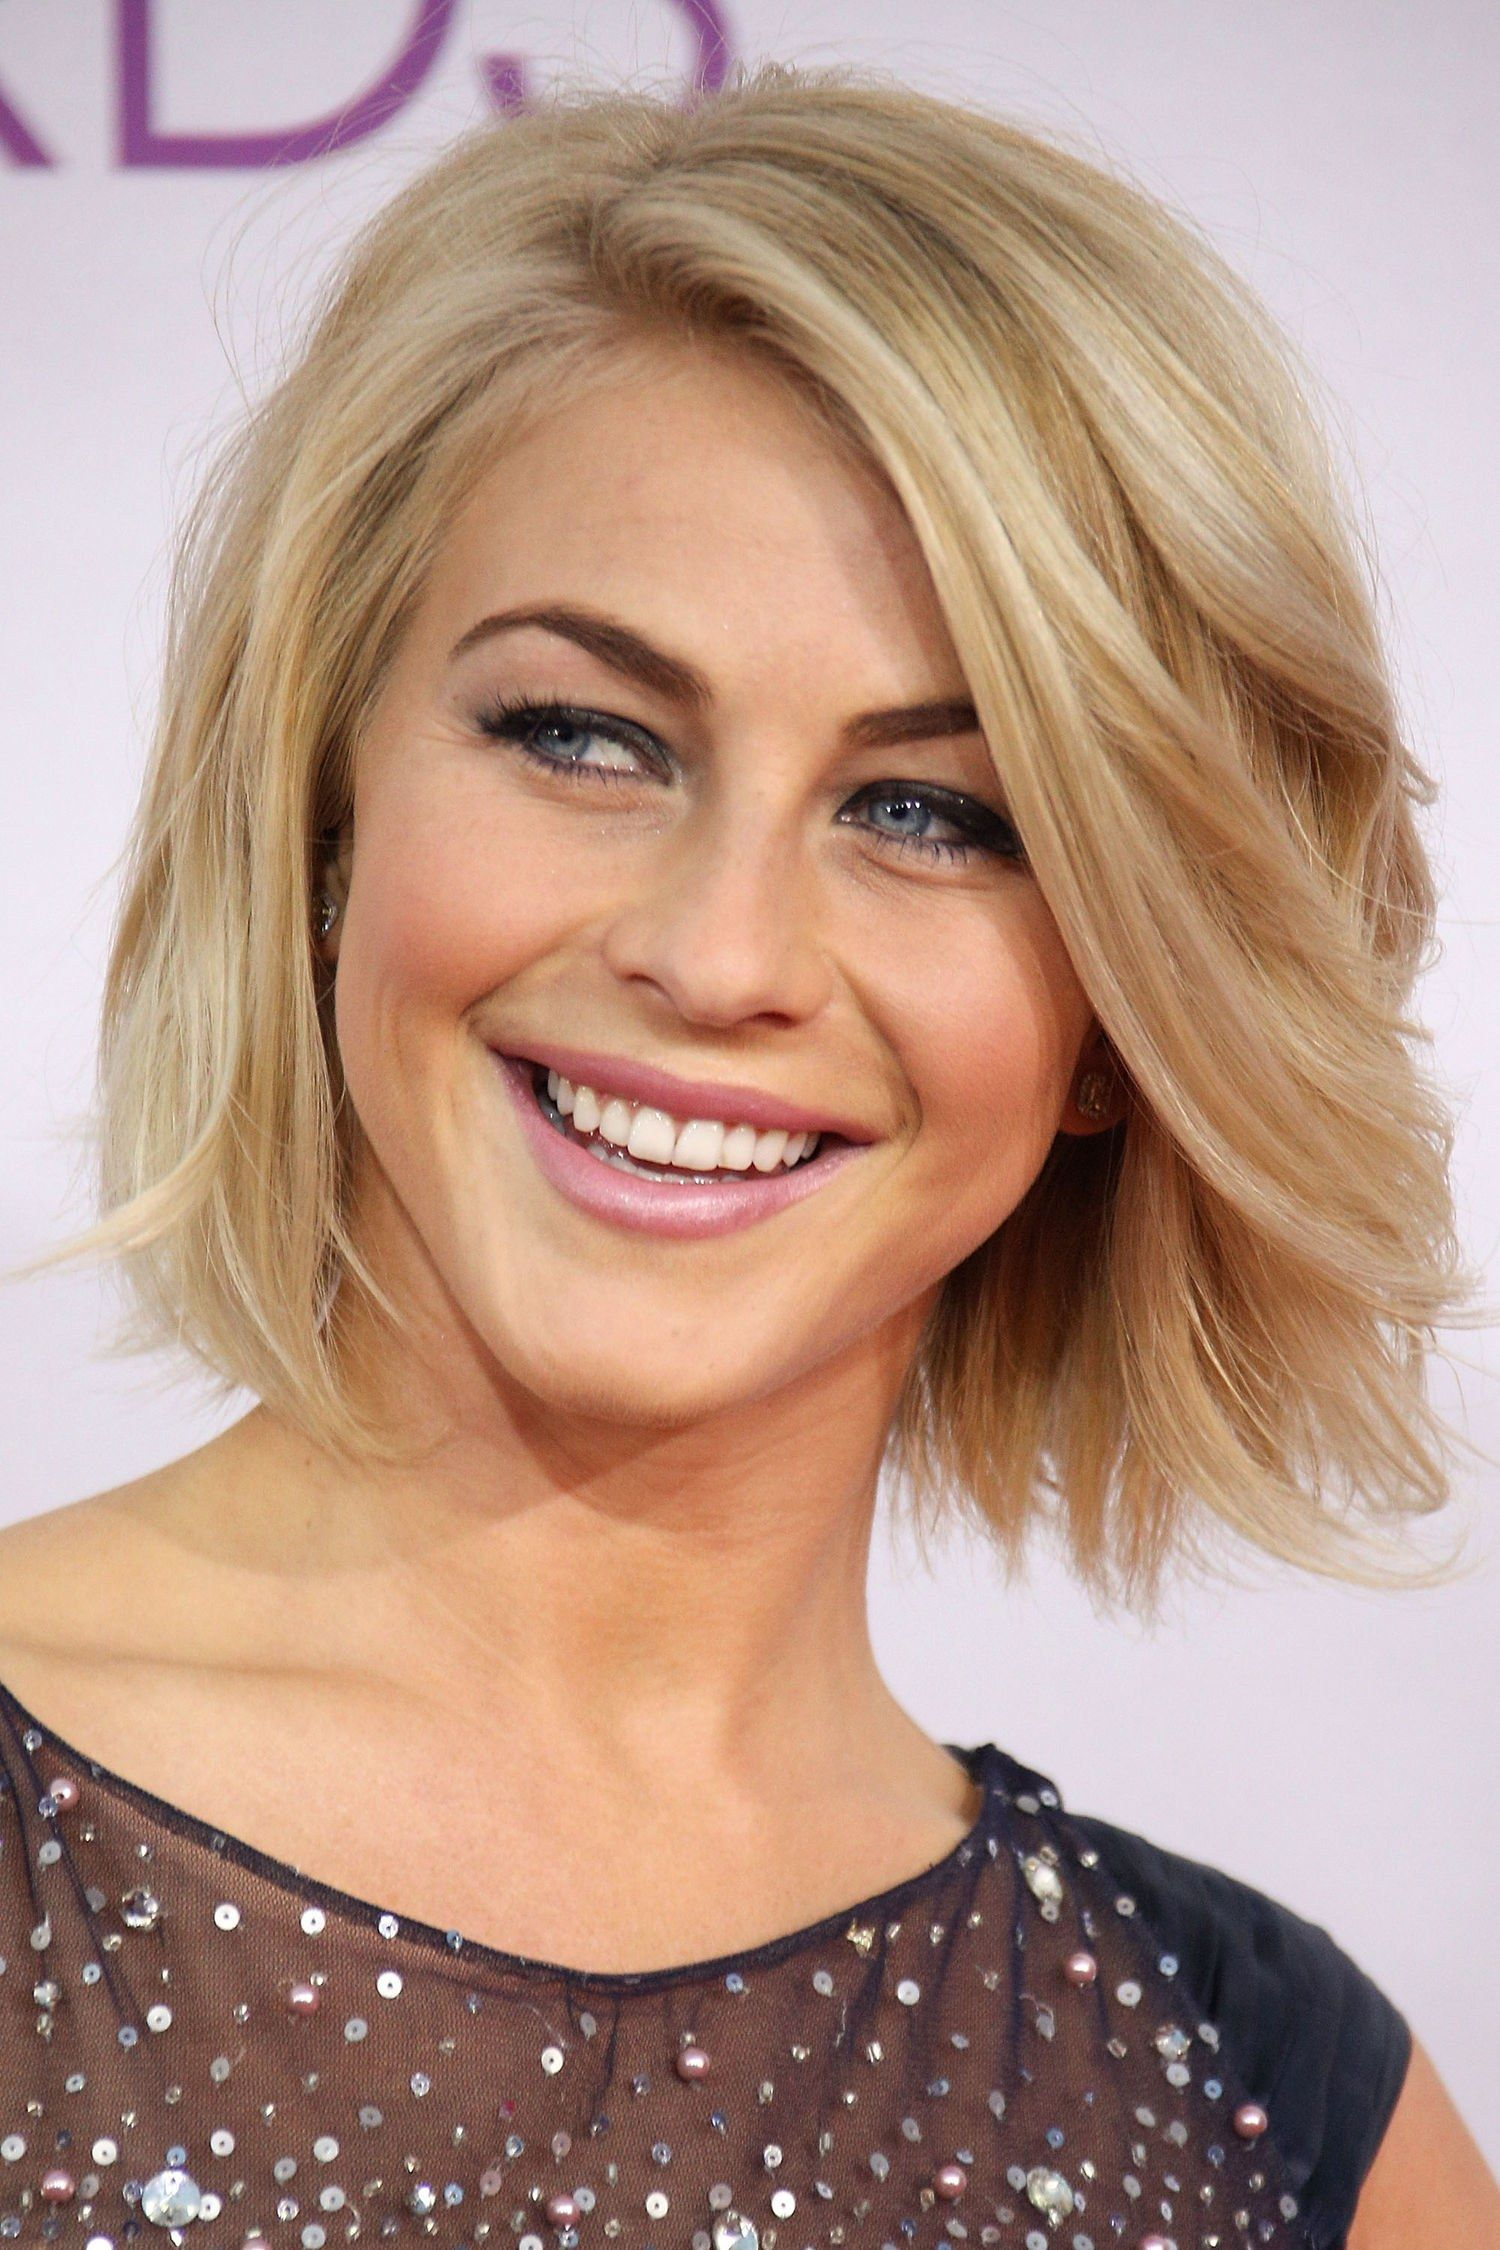 4 Red Carpet Worthy Ways to Style Your Bob